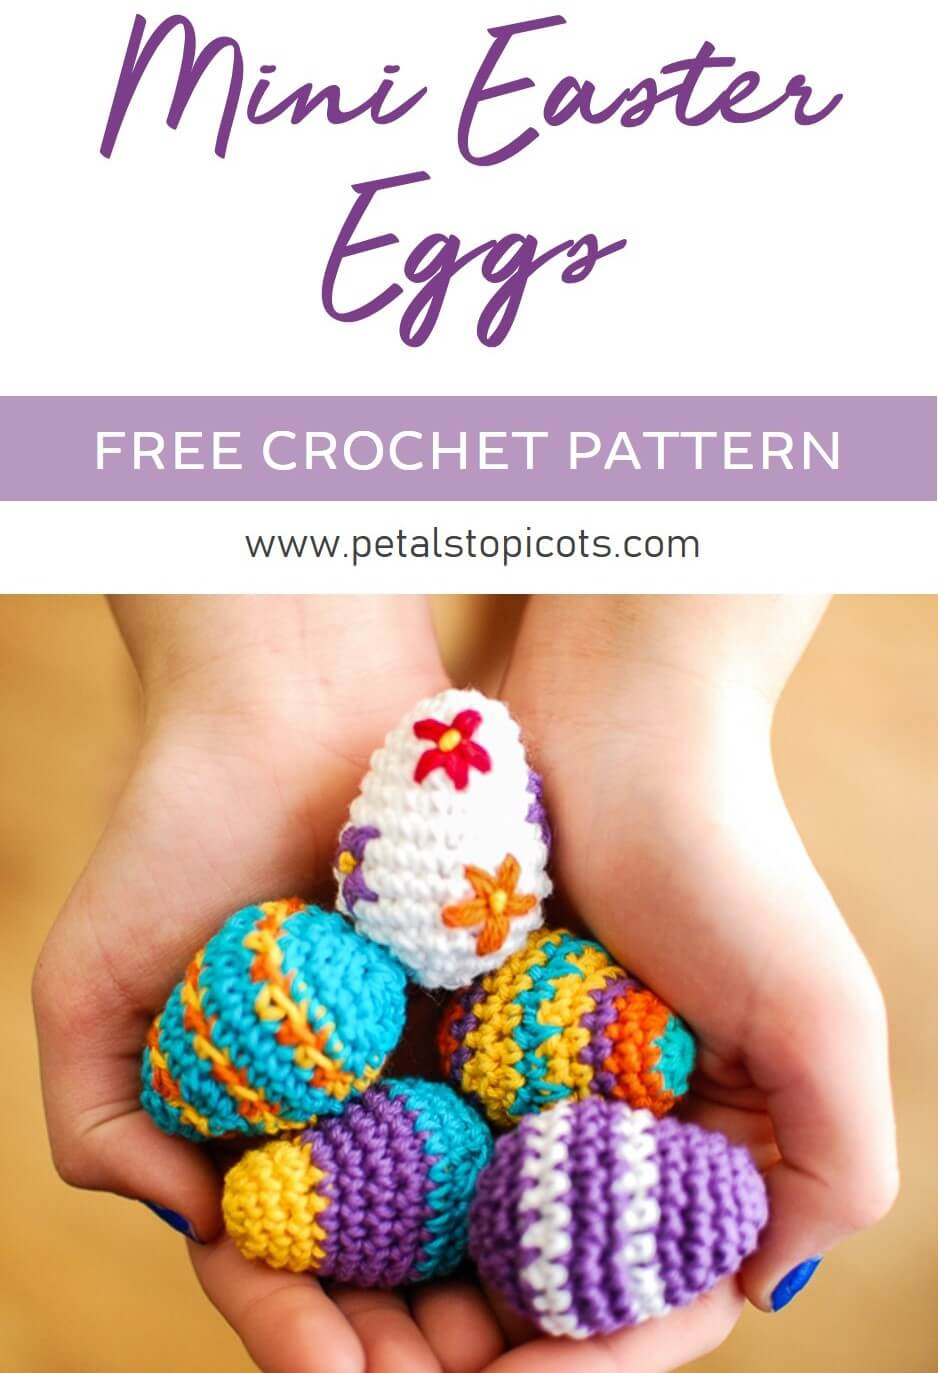 This mini Easter eggs crochet pattern is so fun to work up and so easy too!! Play with colors, add a little embroidery, let your creativity run wild ... . They work up so quickly that you're sure to have a basketful by Easter! #petalstopicots